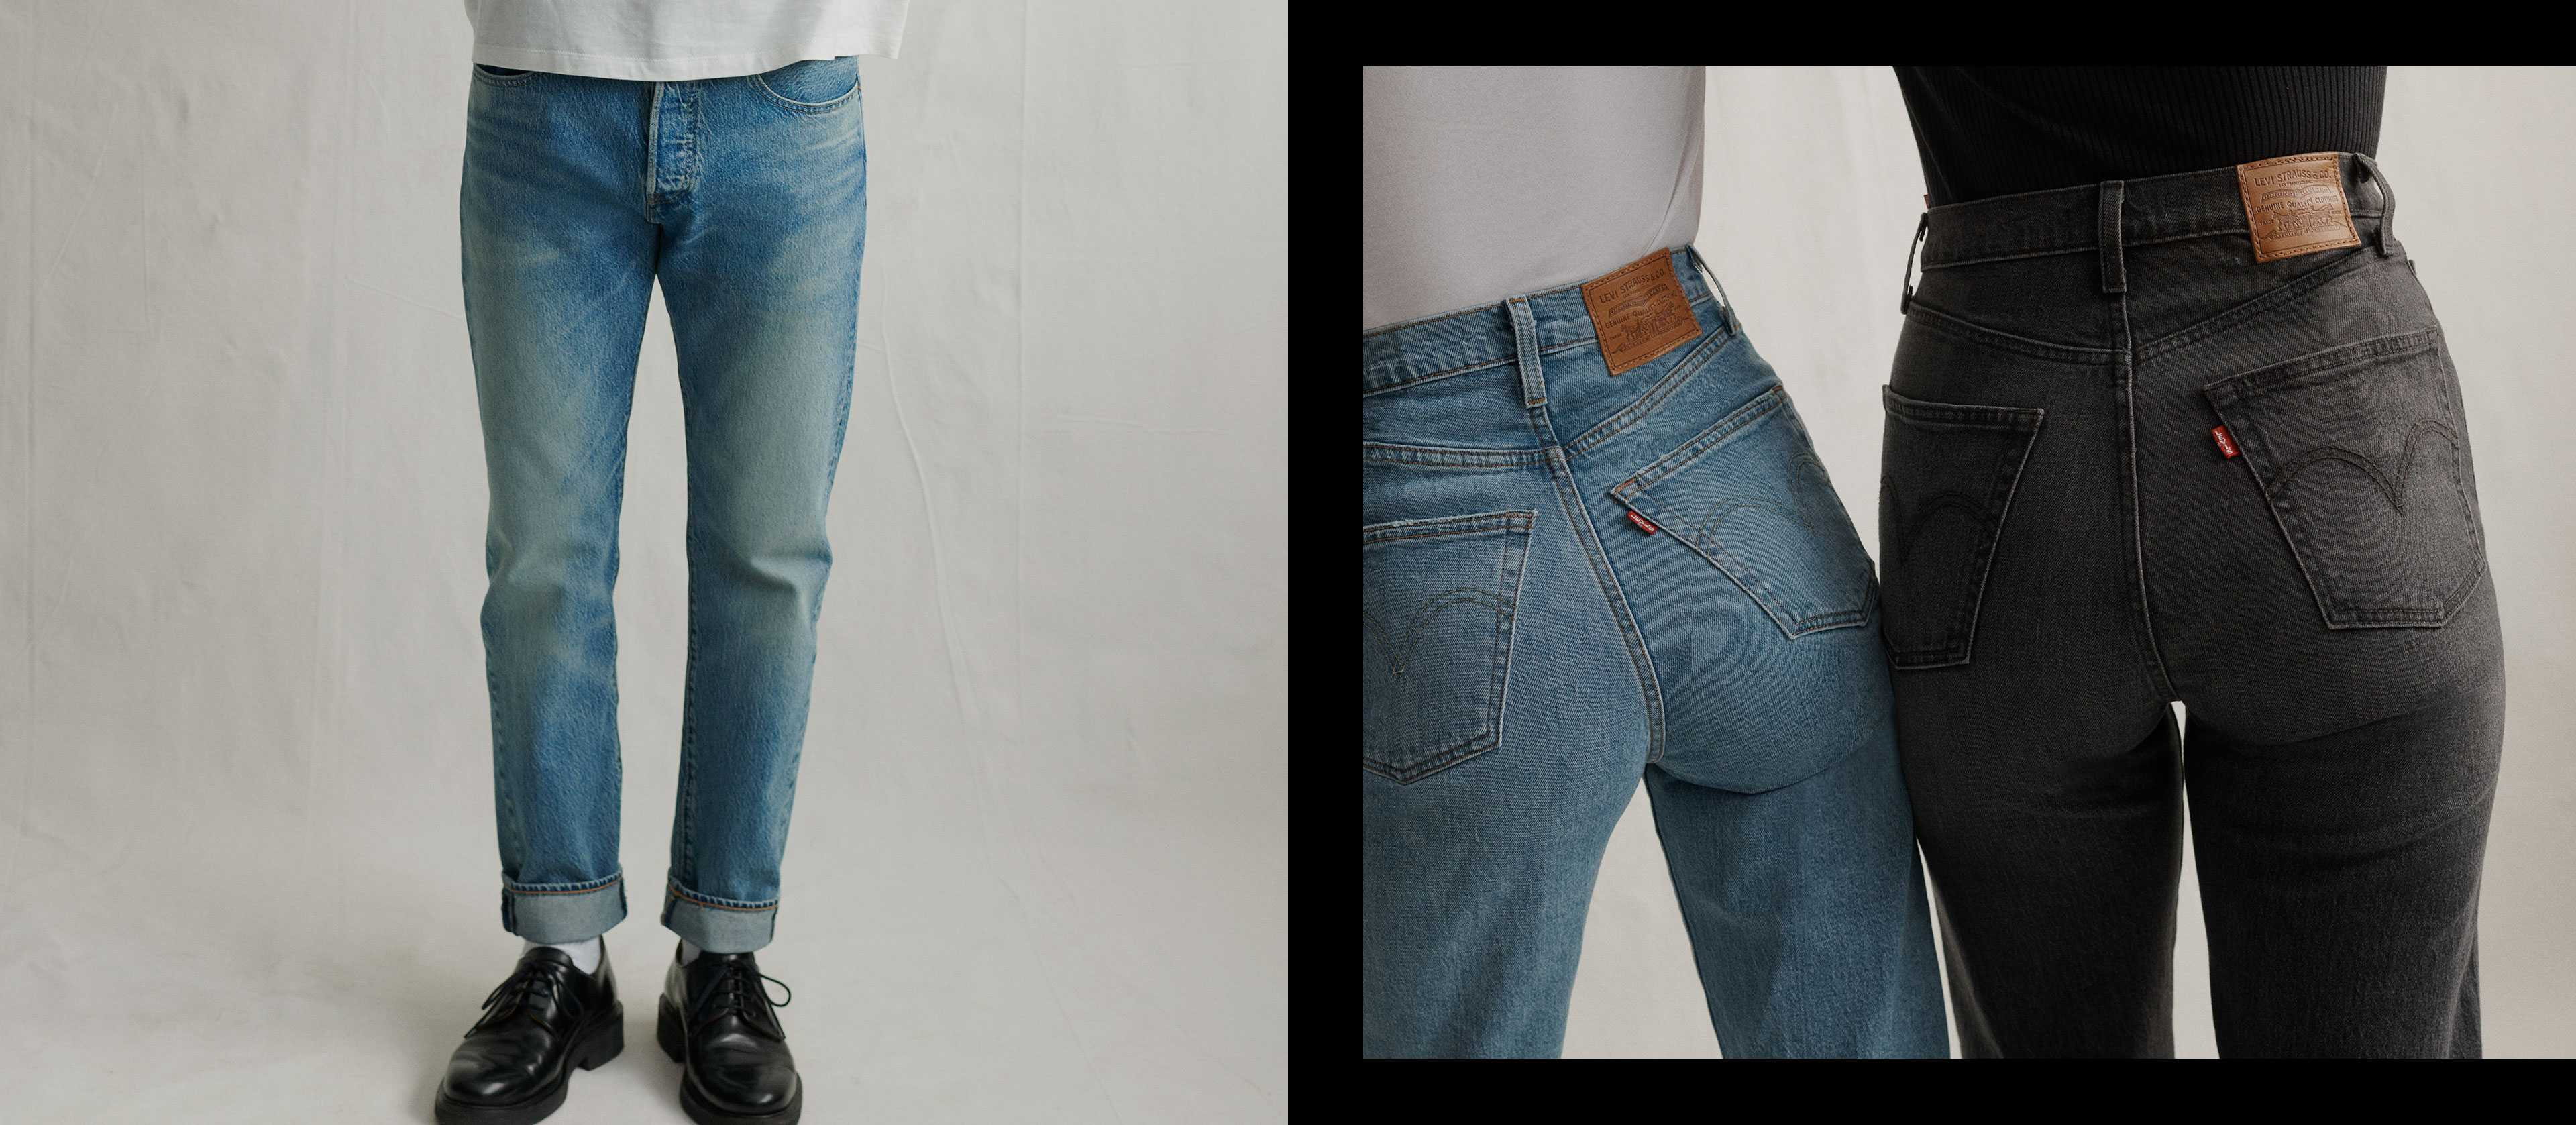 Jeans, Denim Jackets   Clothing   Levi s® Official Site 78a85ad90e5